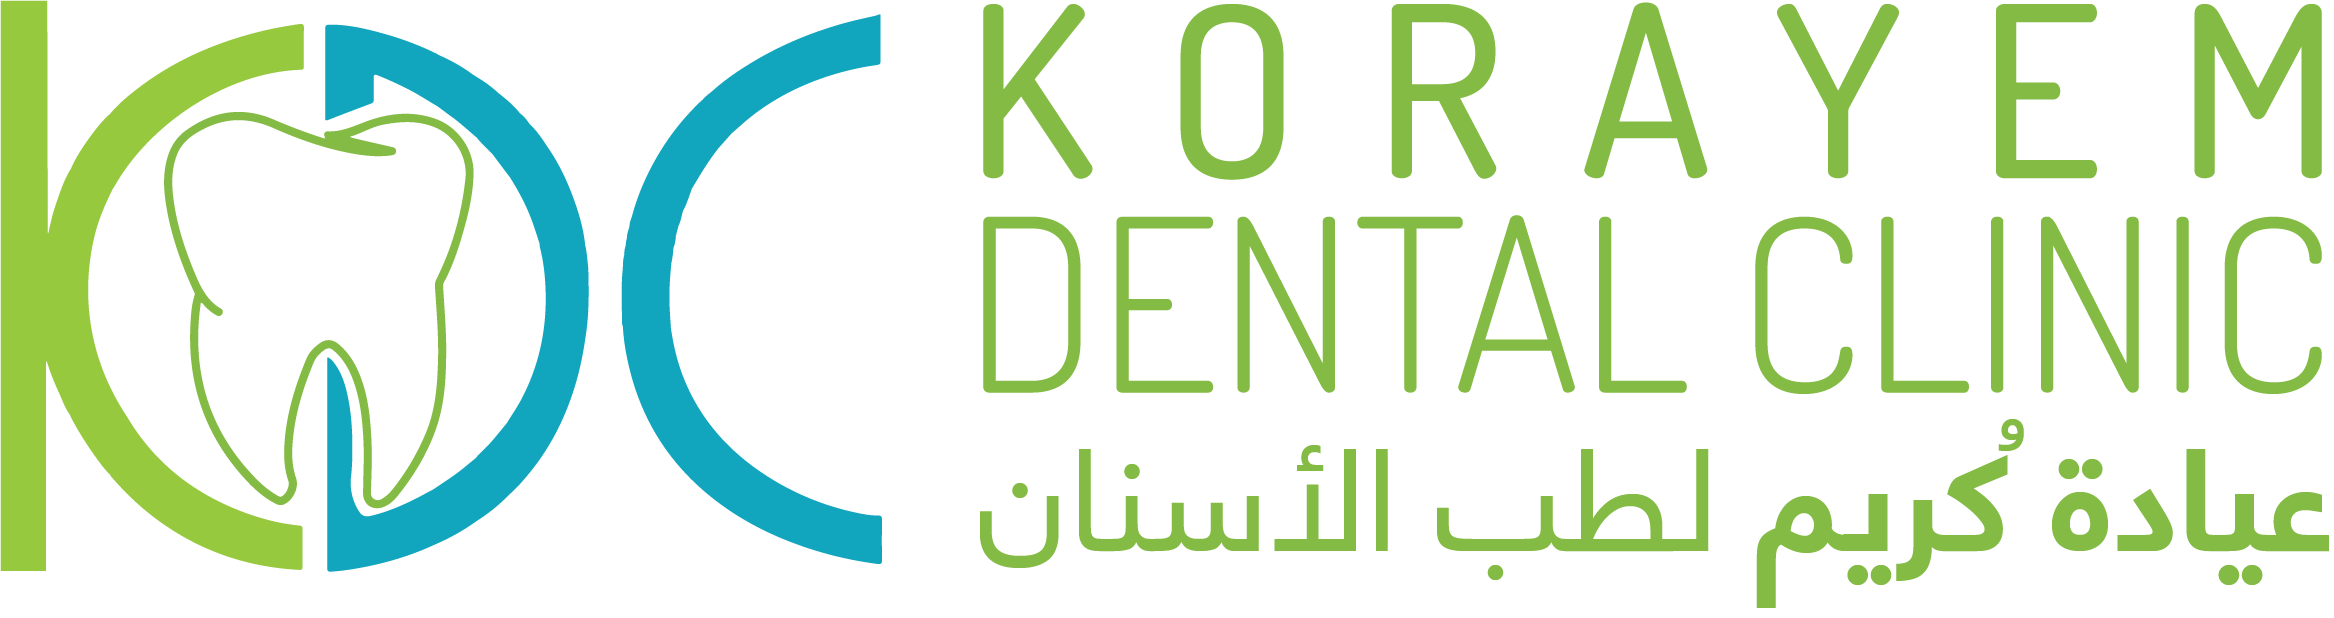 Korayem Dental Clinic